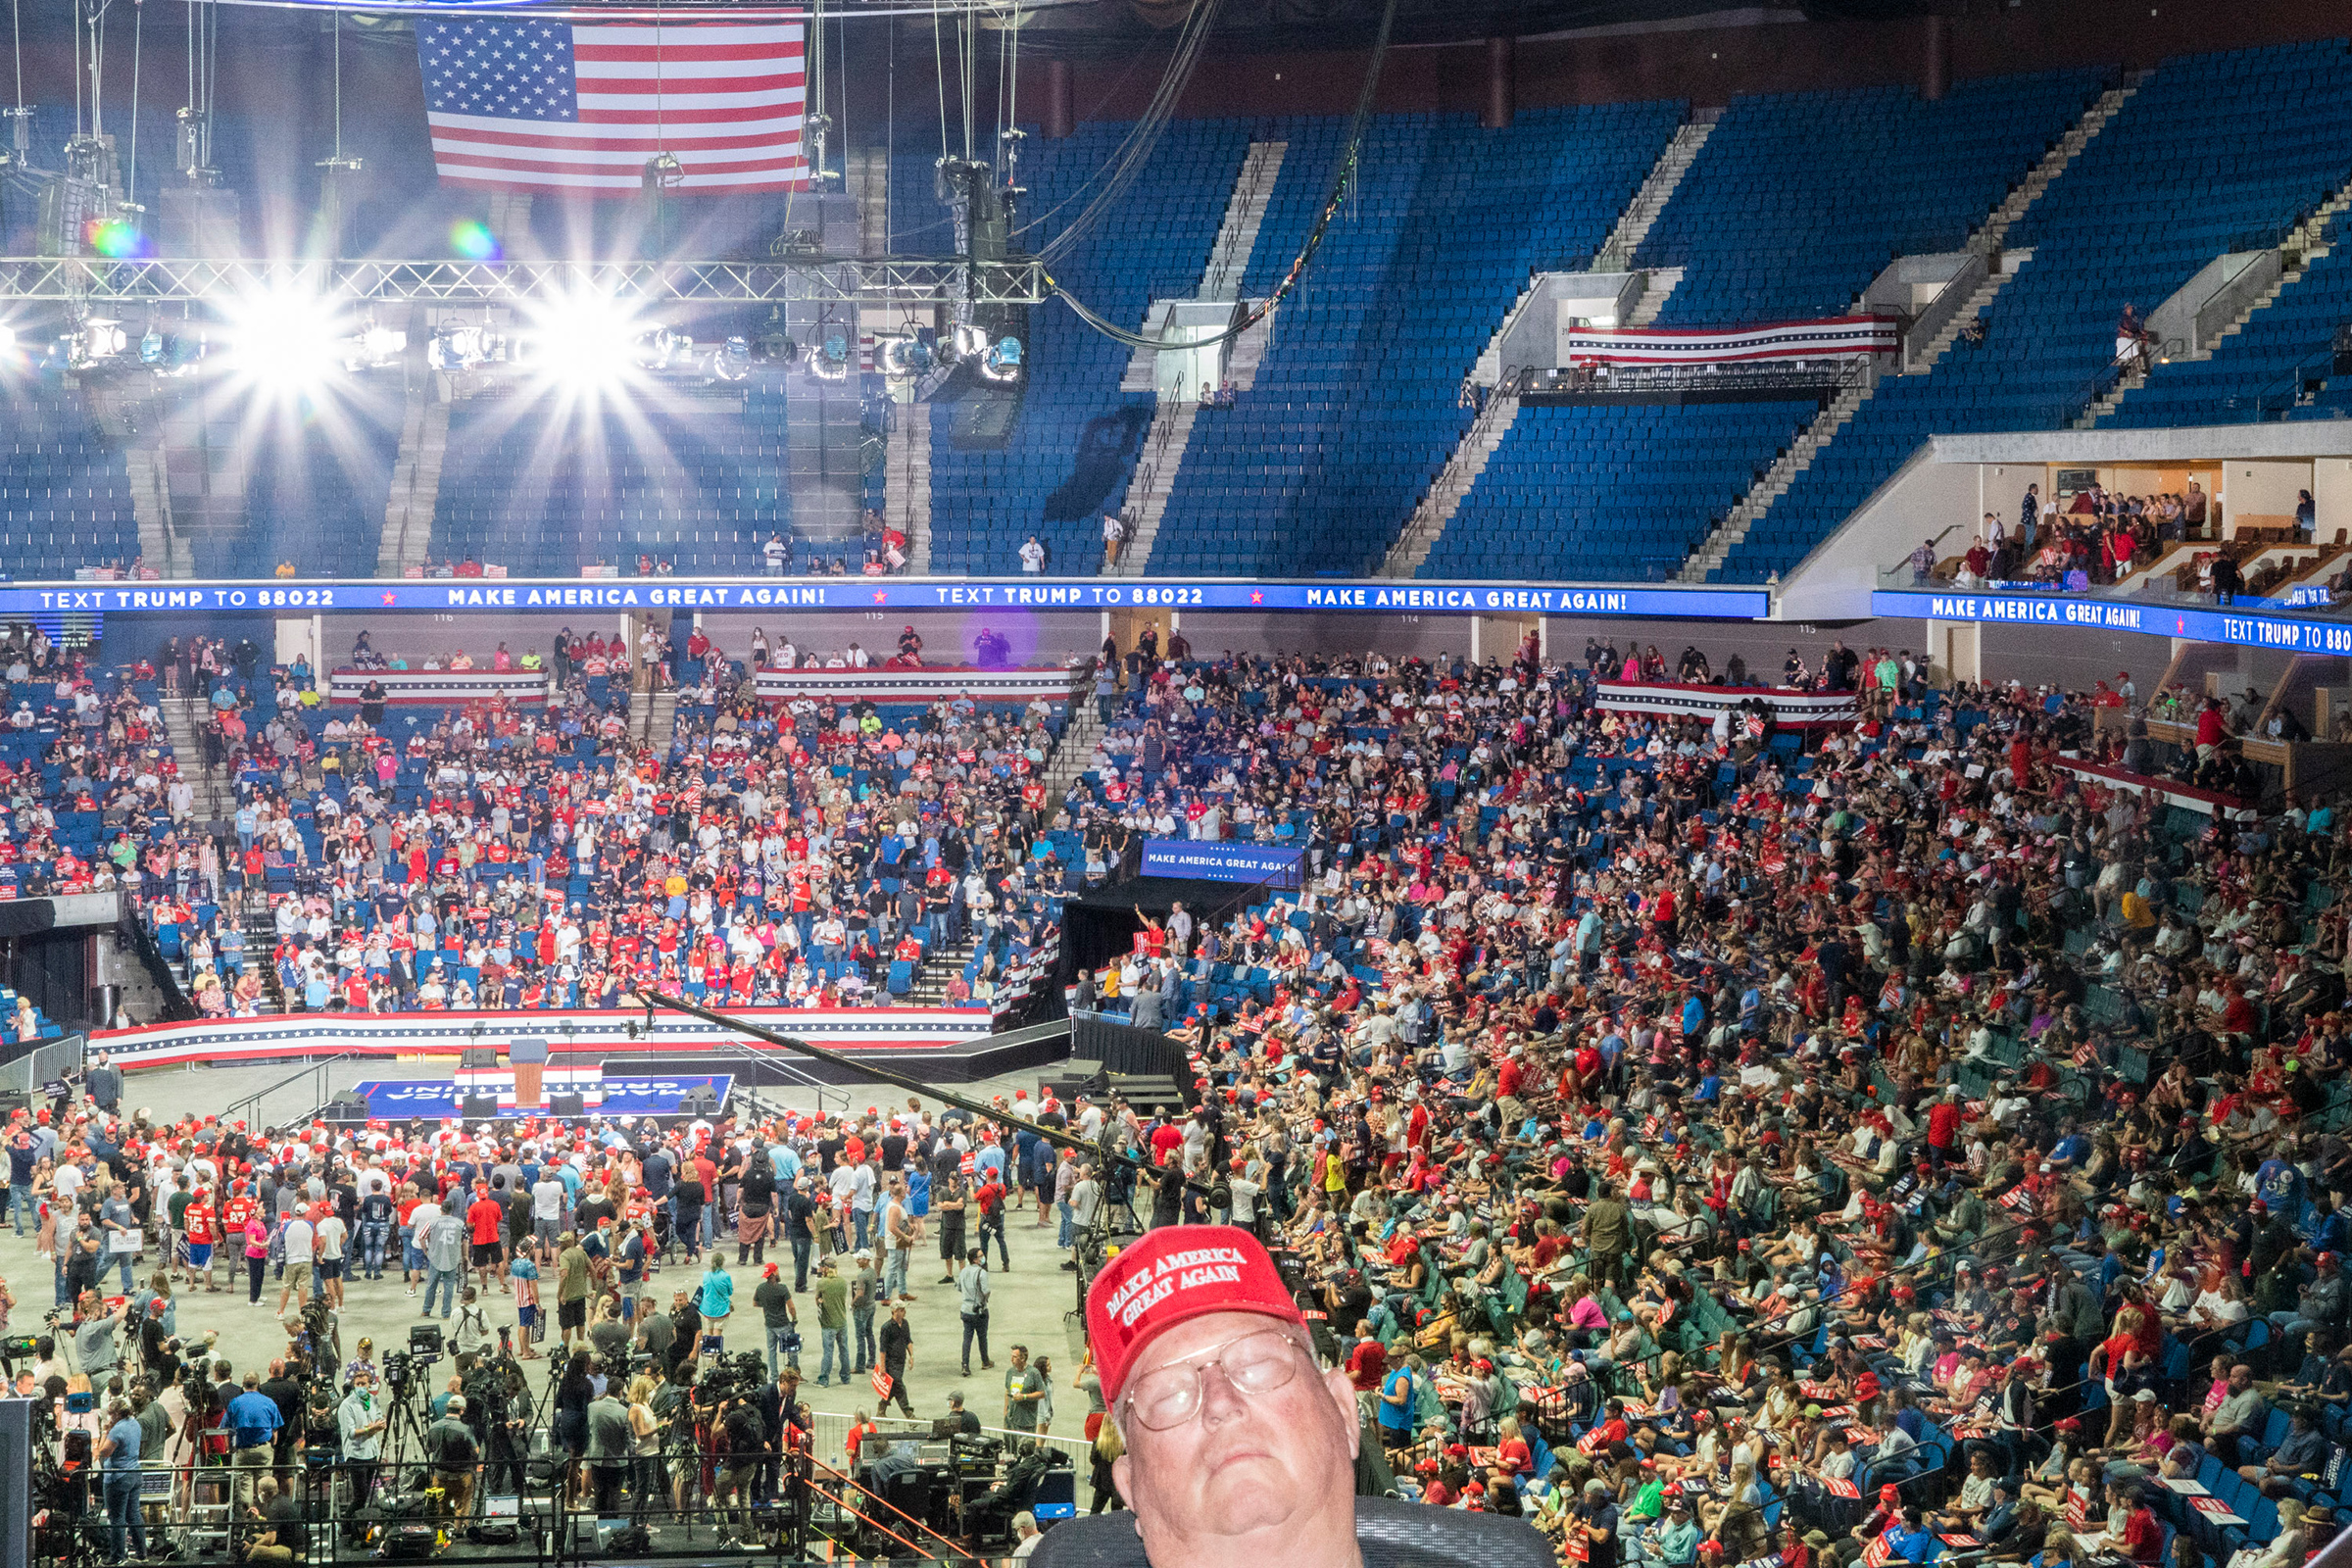 Trump rally attendees wait for the President to arrive at the BOK Center in Tulsa, Oklahoma on June 20, 2020.